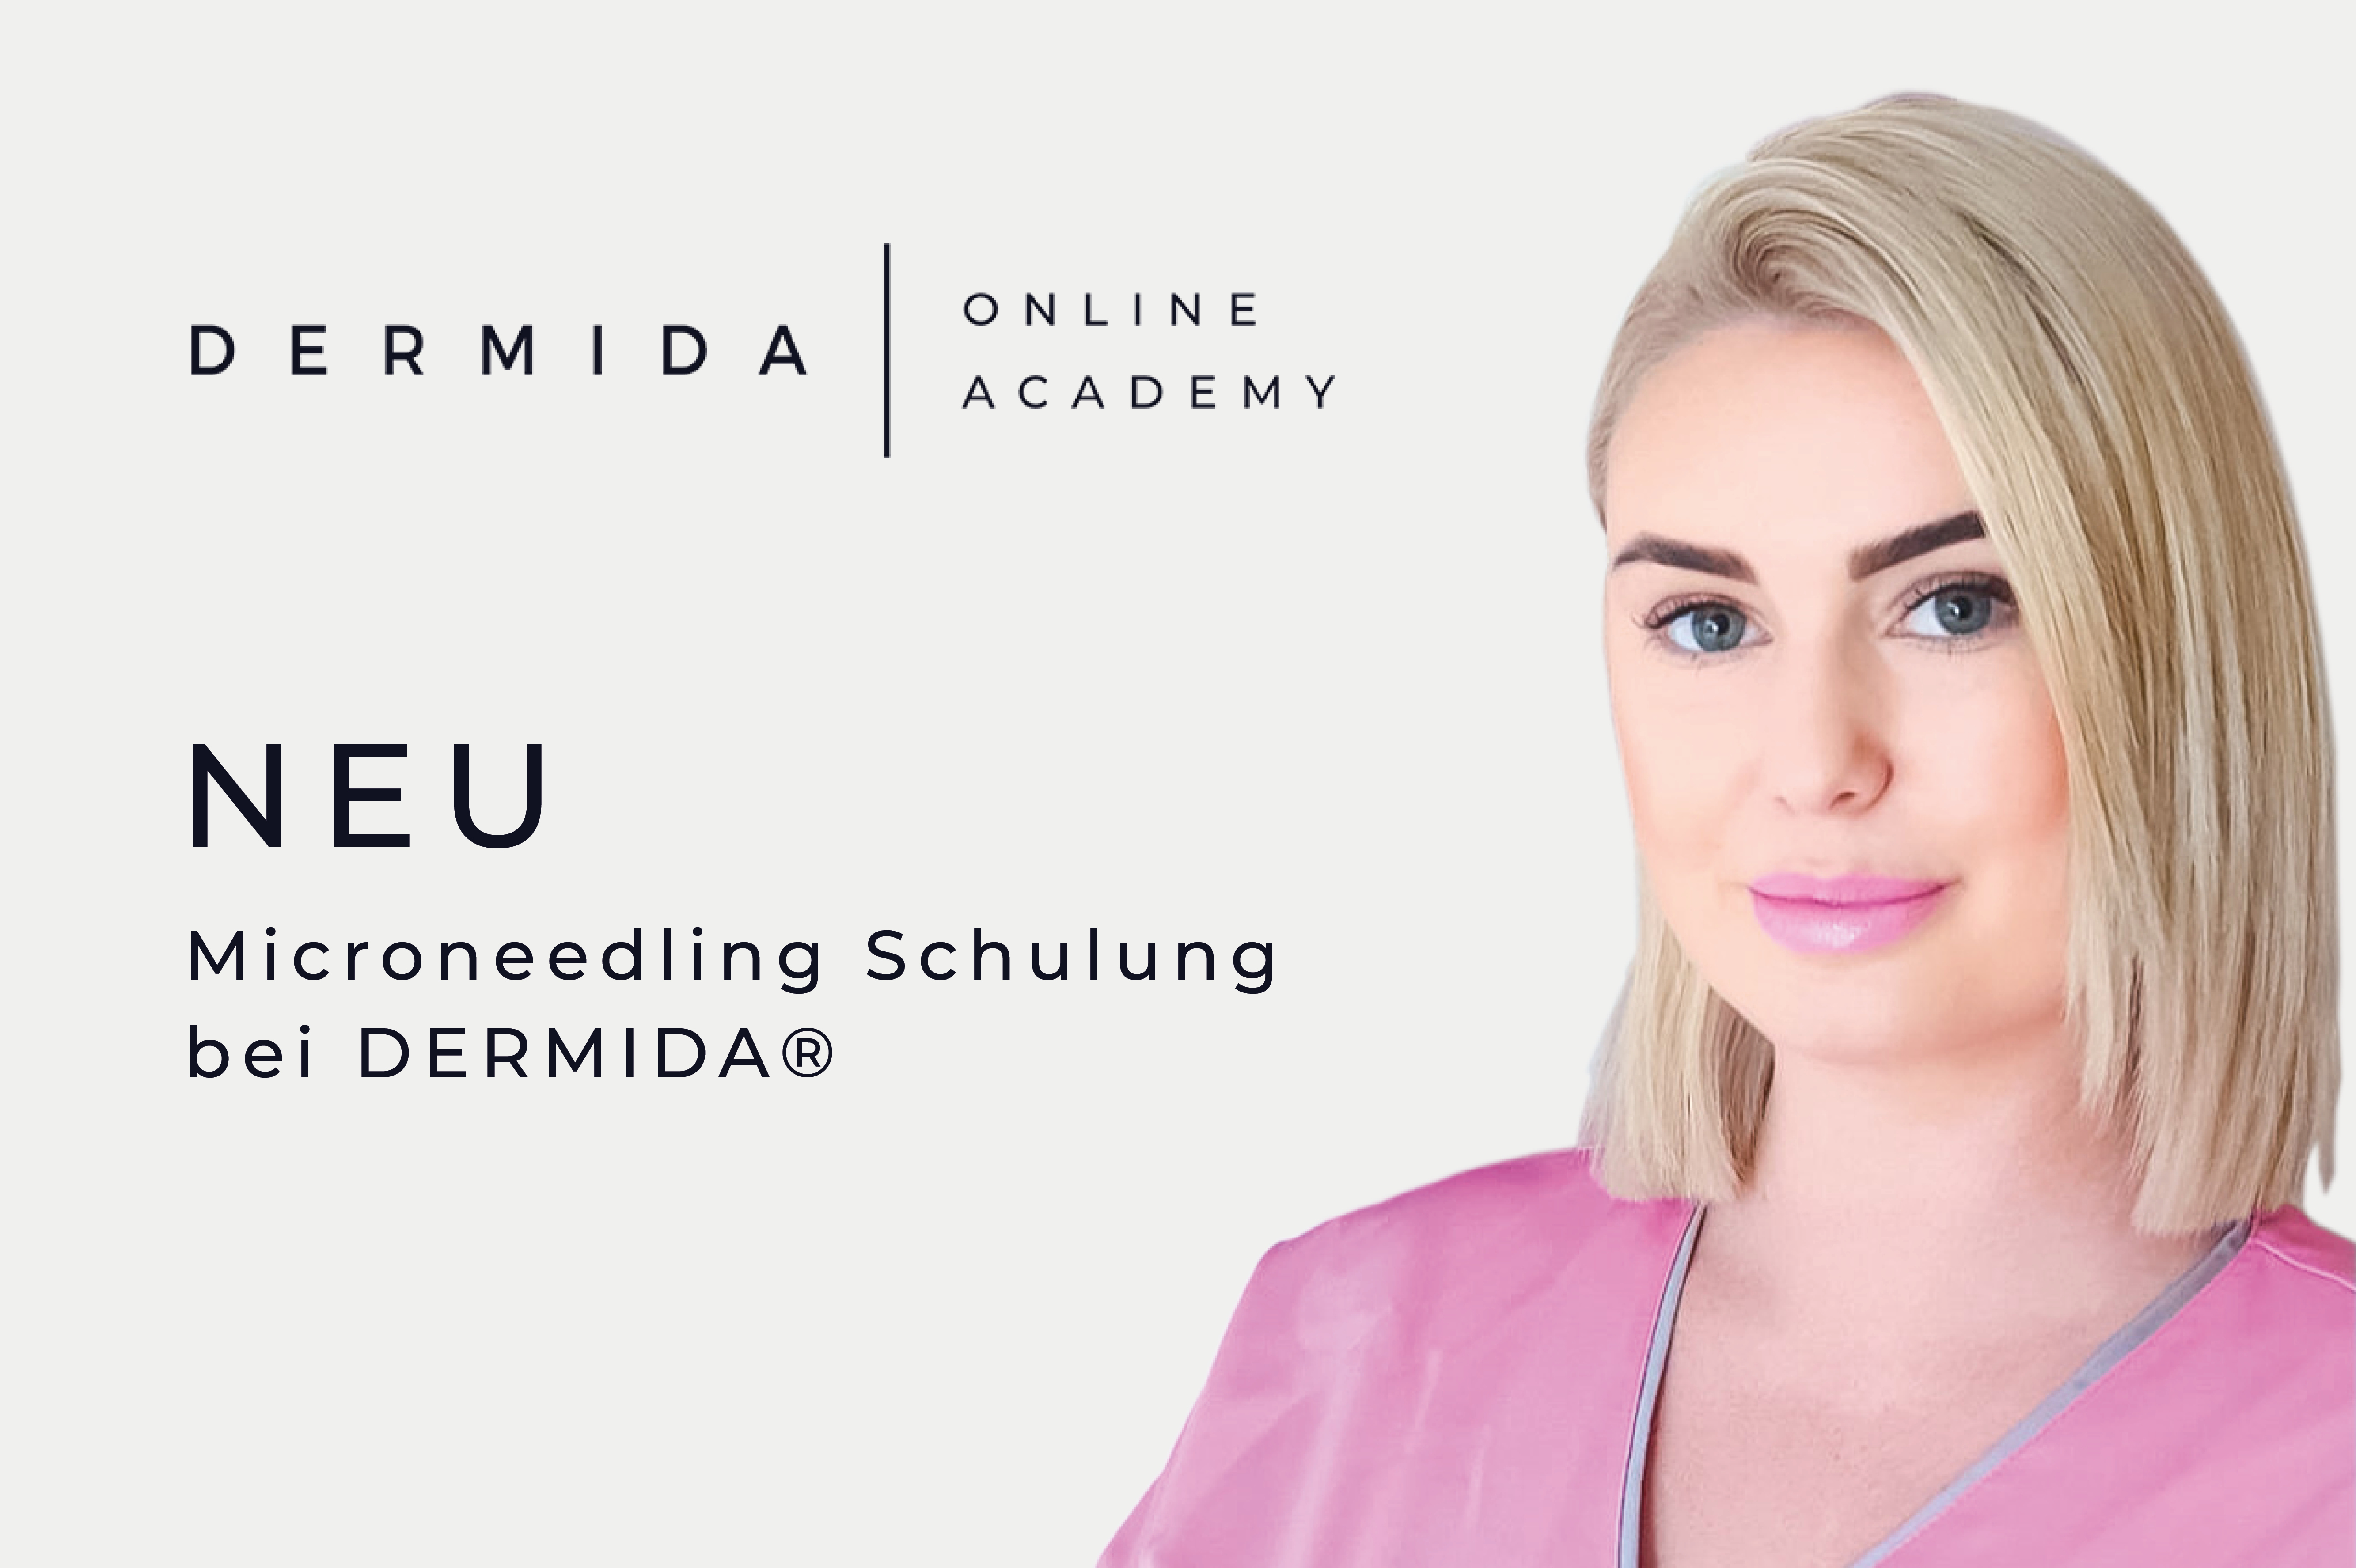 microneedling-schulungFCxidHRuc6J5m